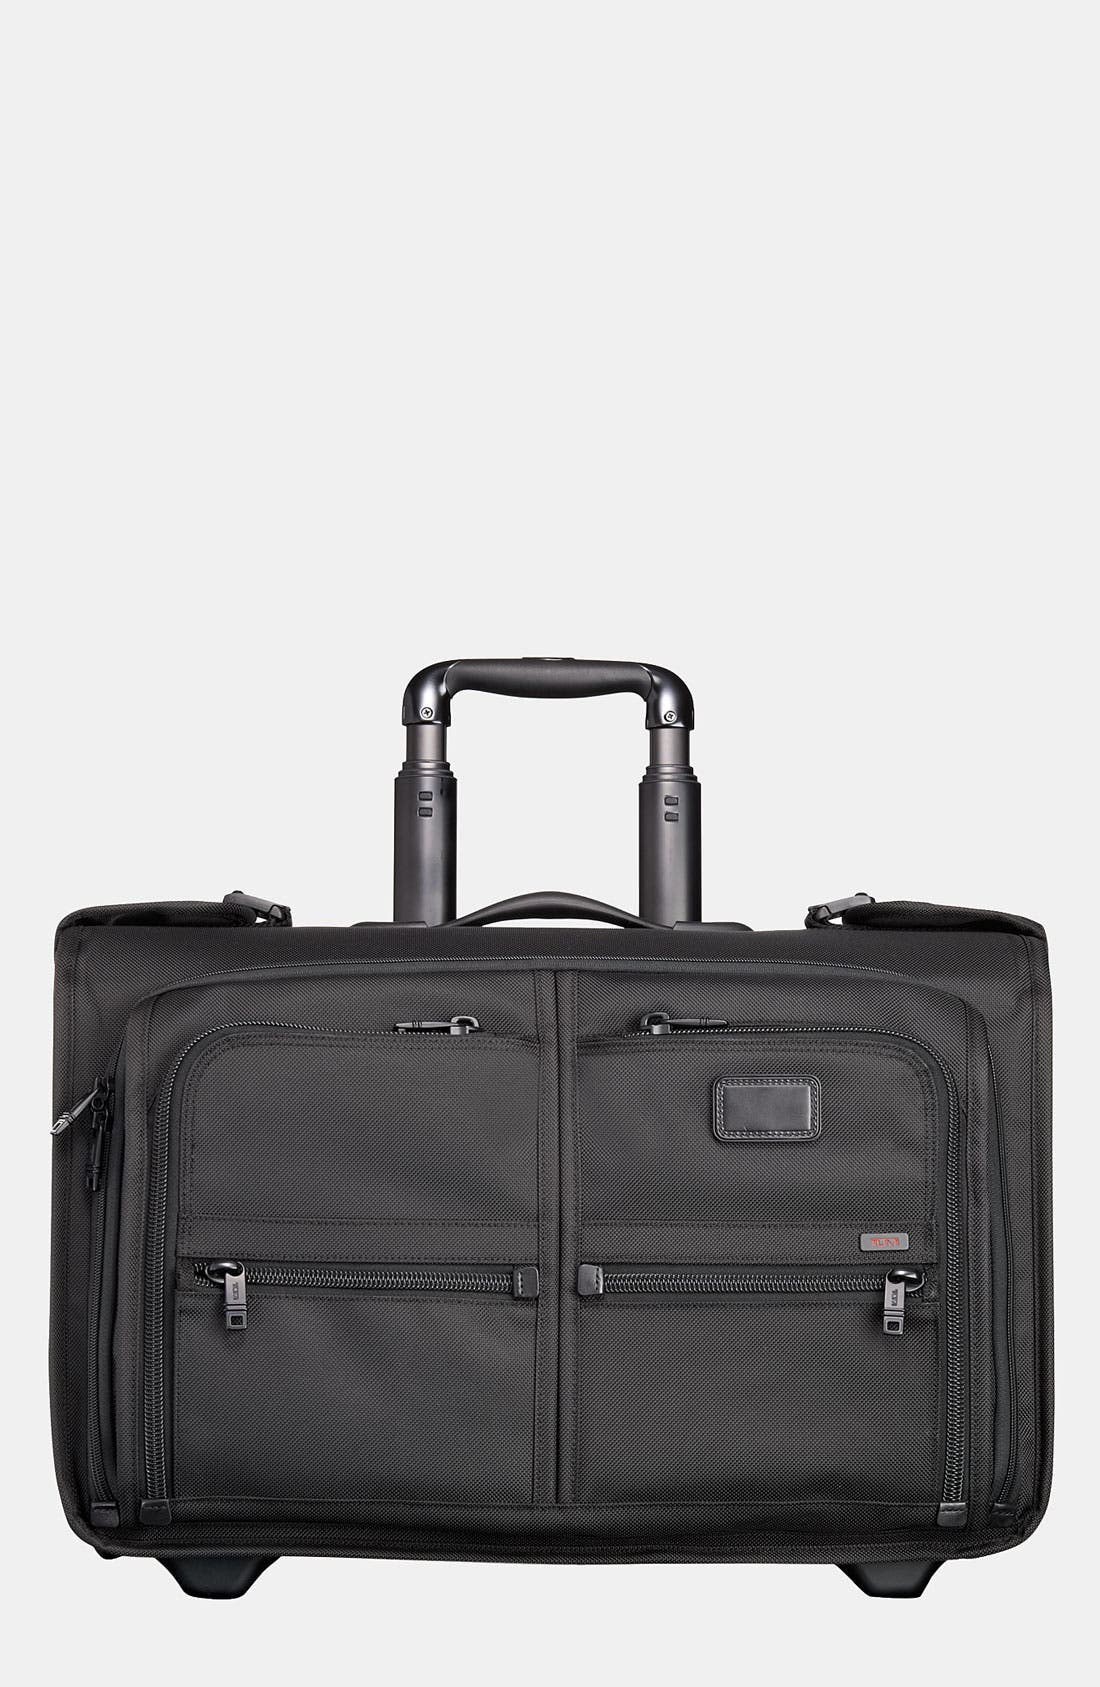 Alternate Image 1 Selected - Tumi 'Alpha' Wheeled Carry-On Garment Bag